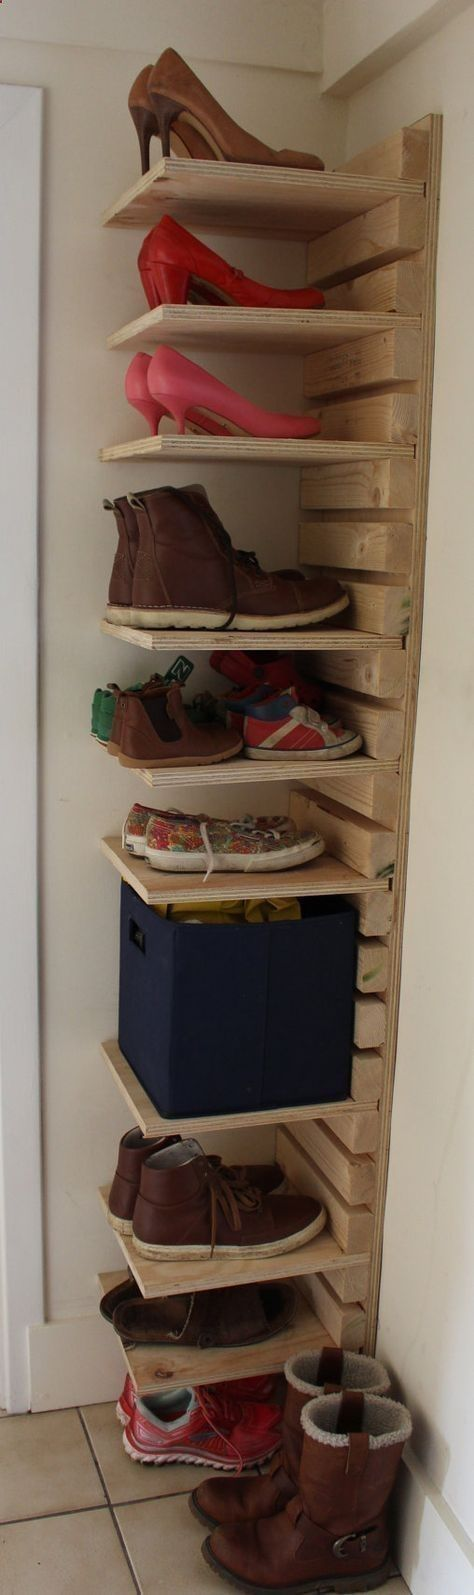 Plans of Woodworking Diy Projects STORAGE